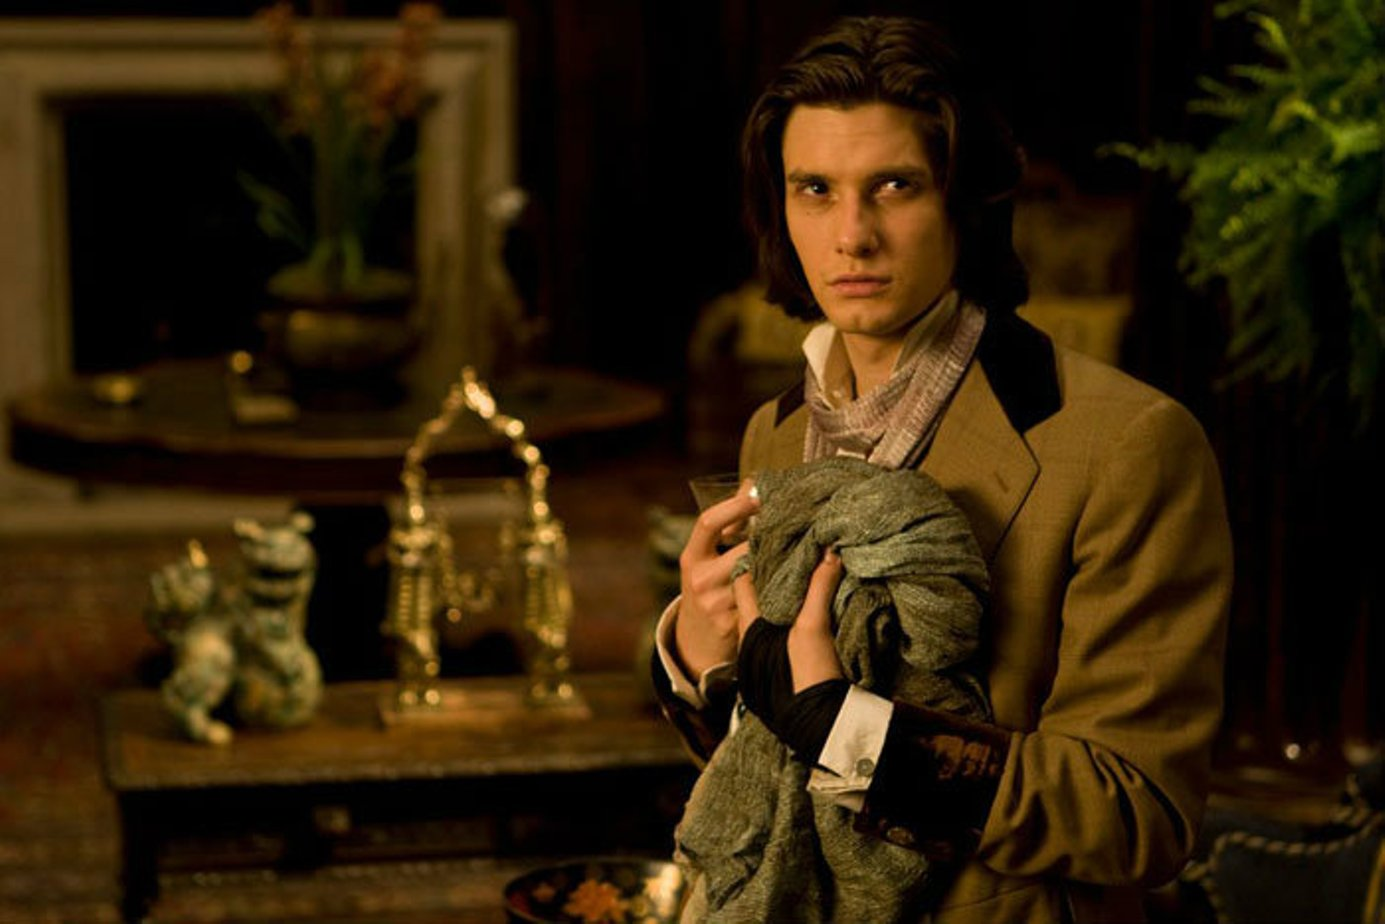 victorian scandal through the representation of homosexual characters in a picture of dorian grey a  21 picture of dorian grey essay examples from #1 writing victorian scandal through the representation of homosexual characters in a picture of dorian grey.